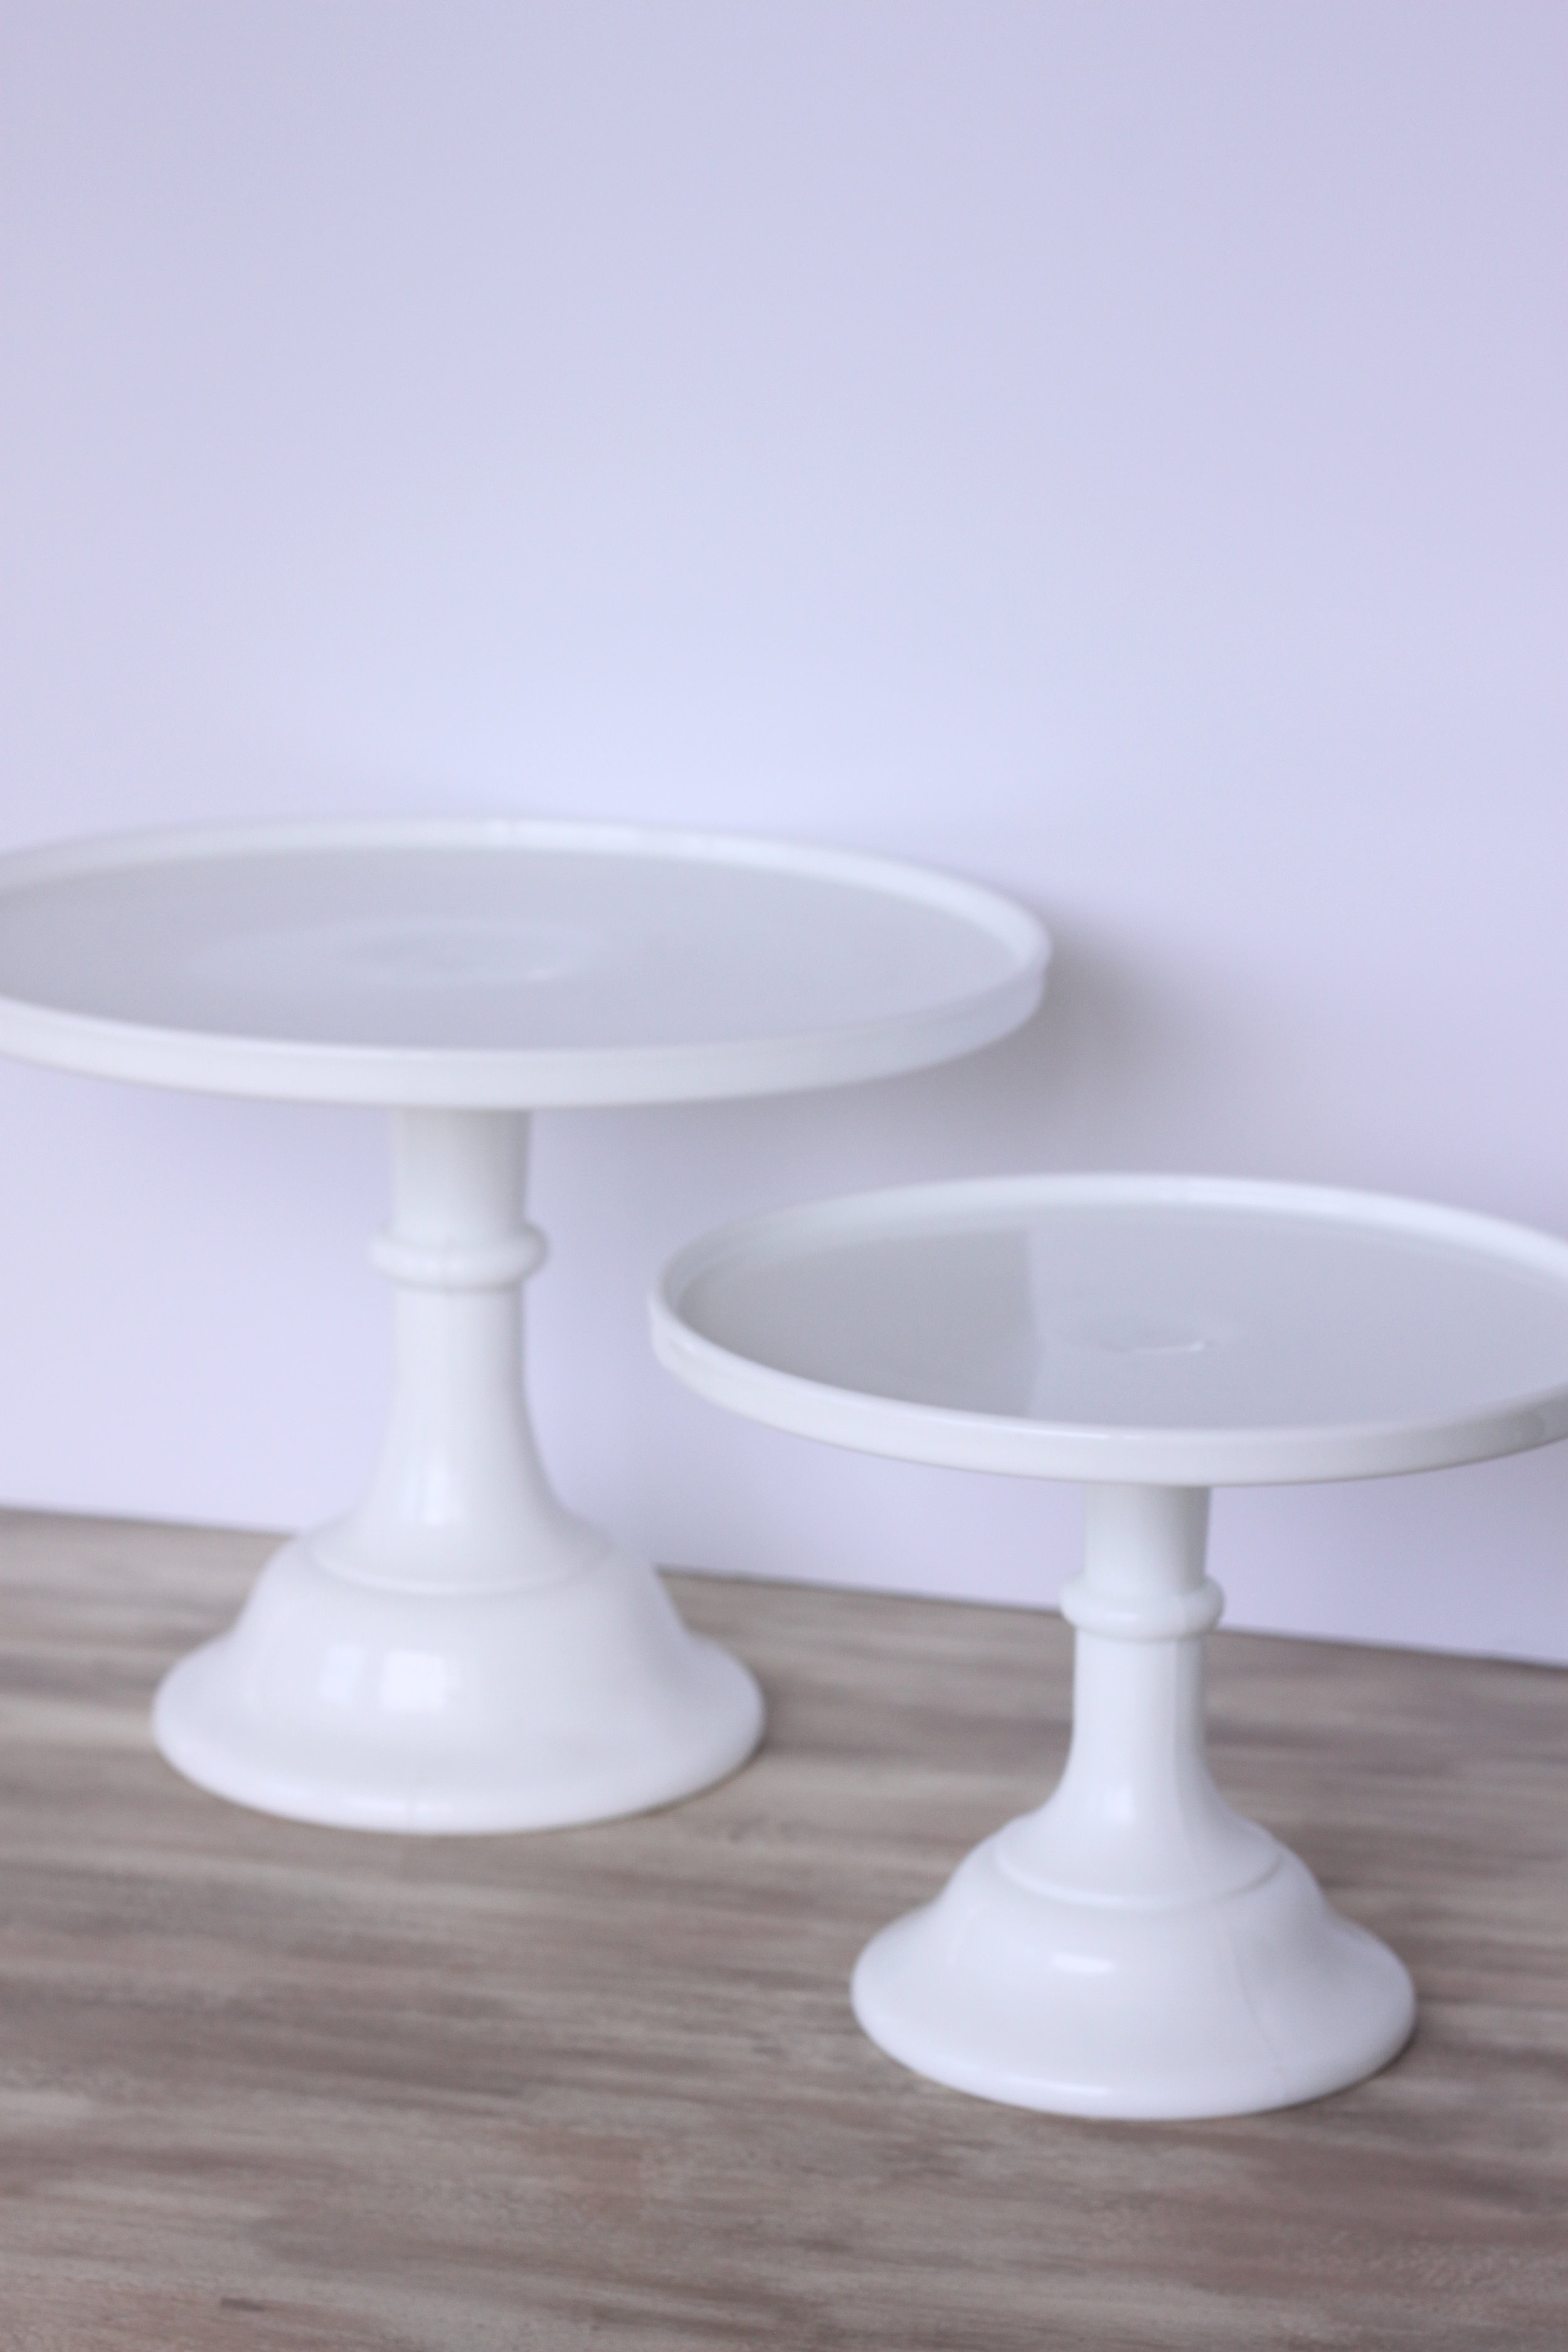 Copy of Meredith Cake Stand Sm. $6 Lrg. $8